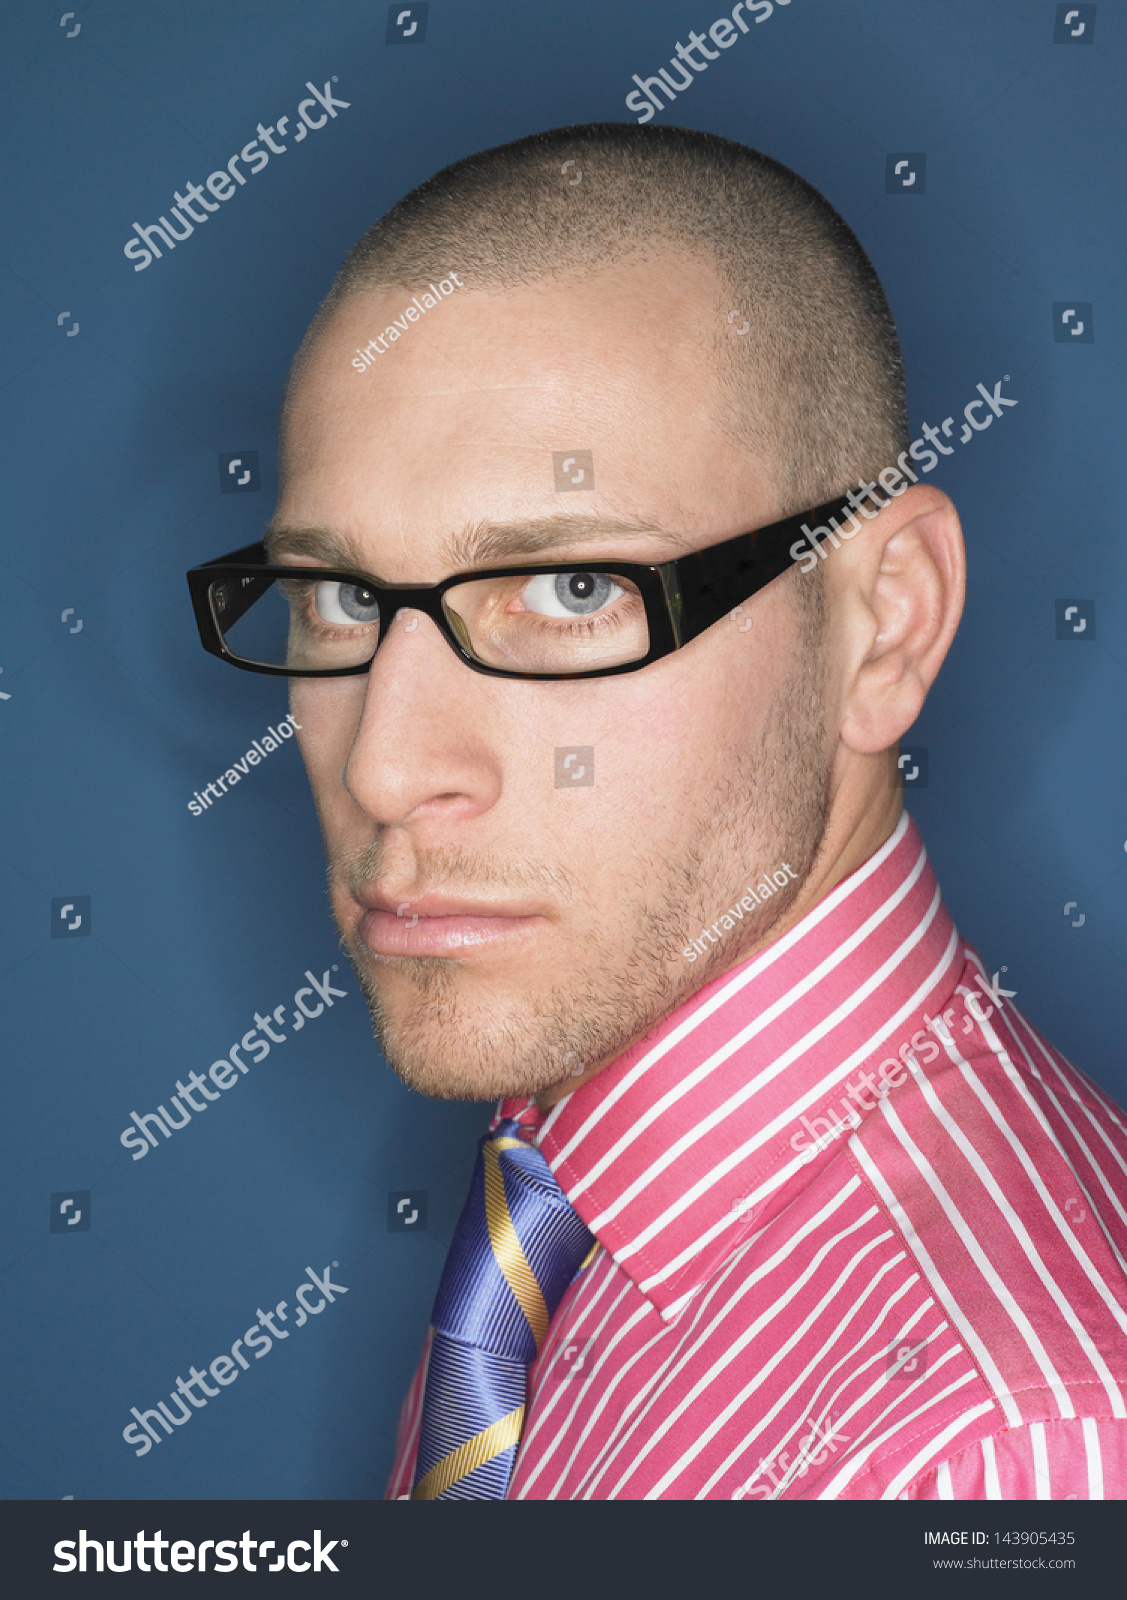 Glasses stylish for bald men recommend dress in autumn in 2019